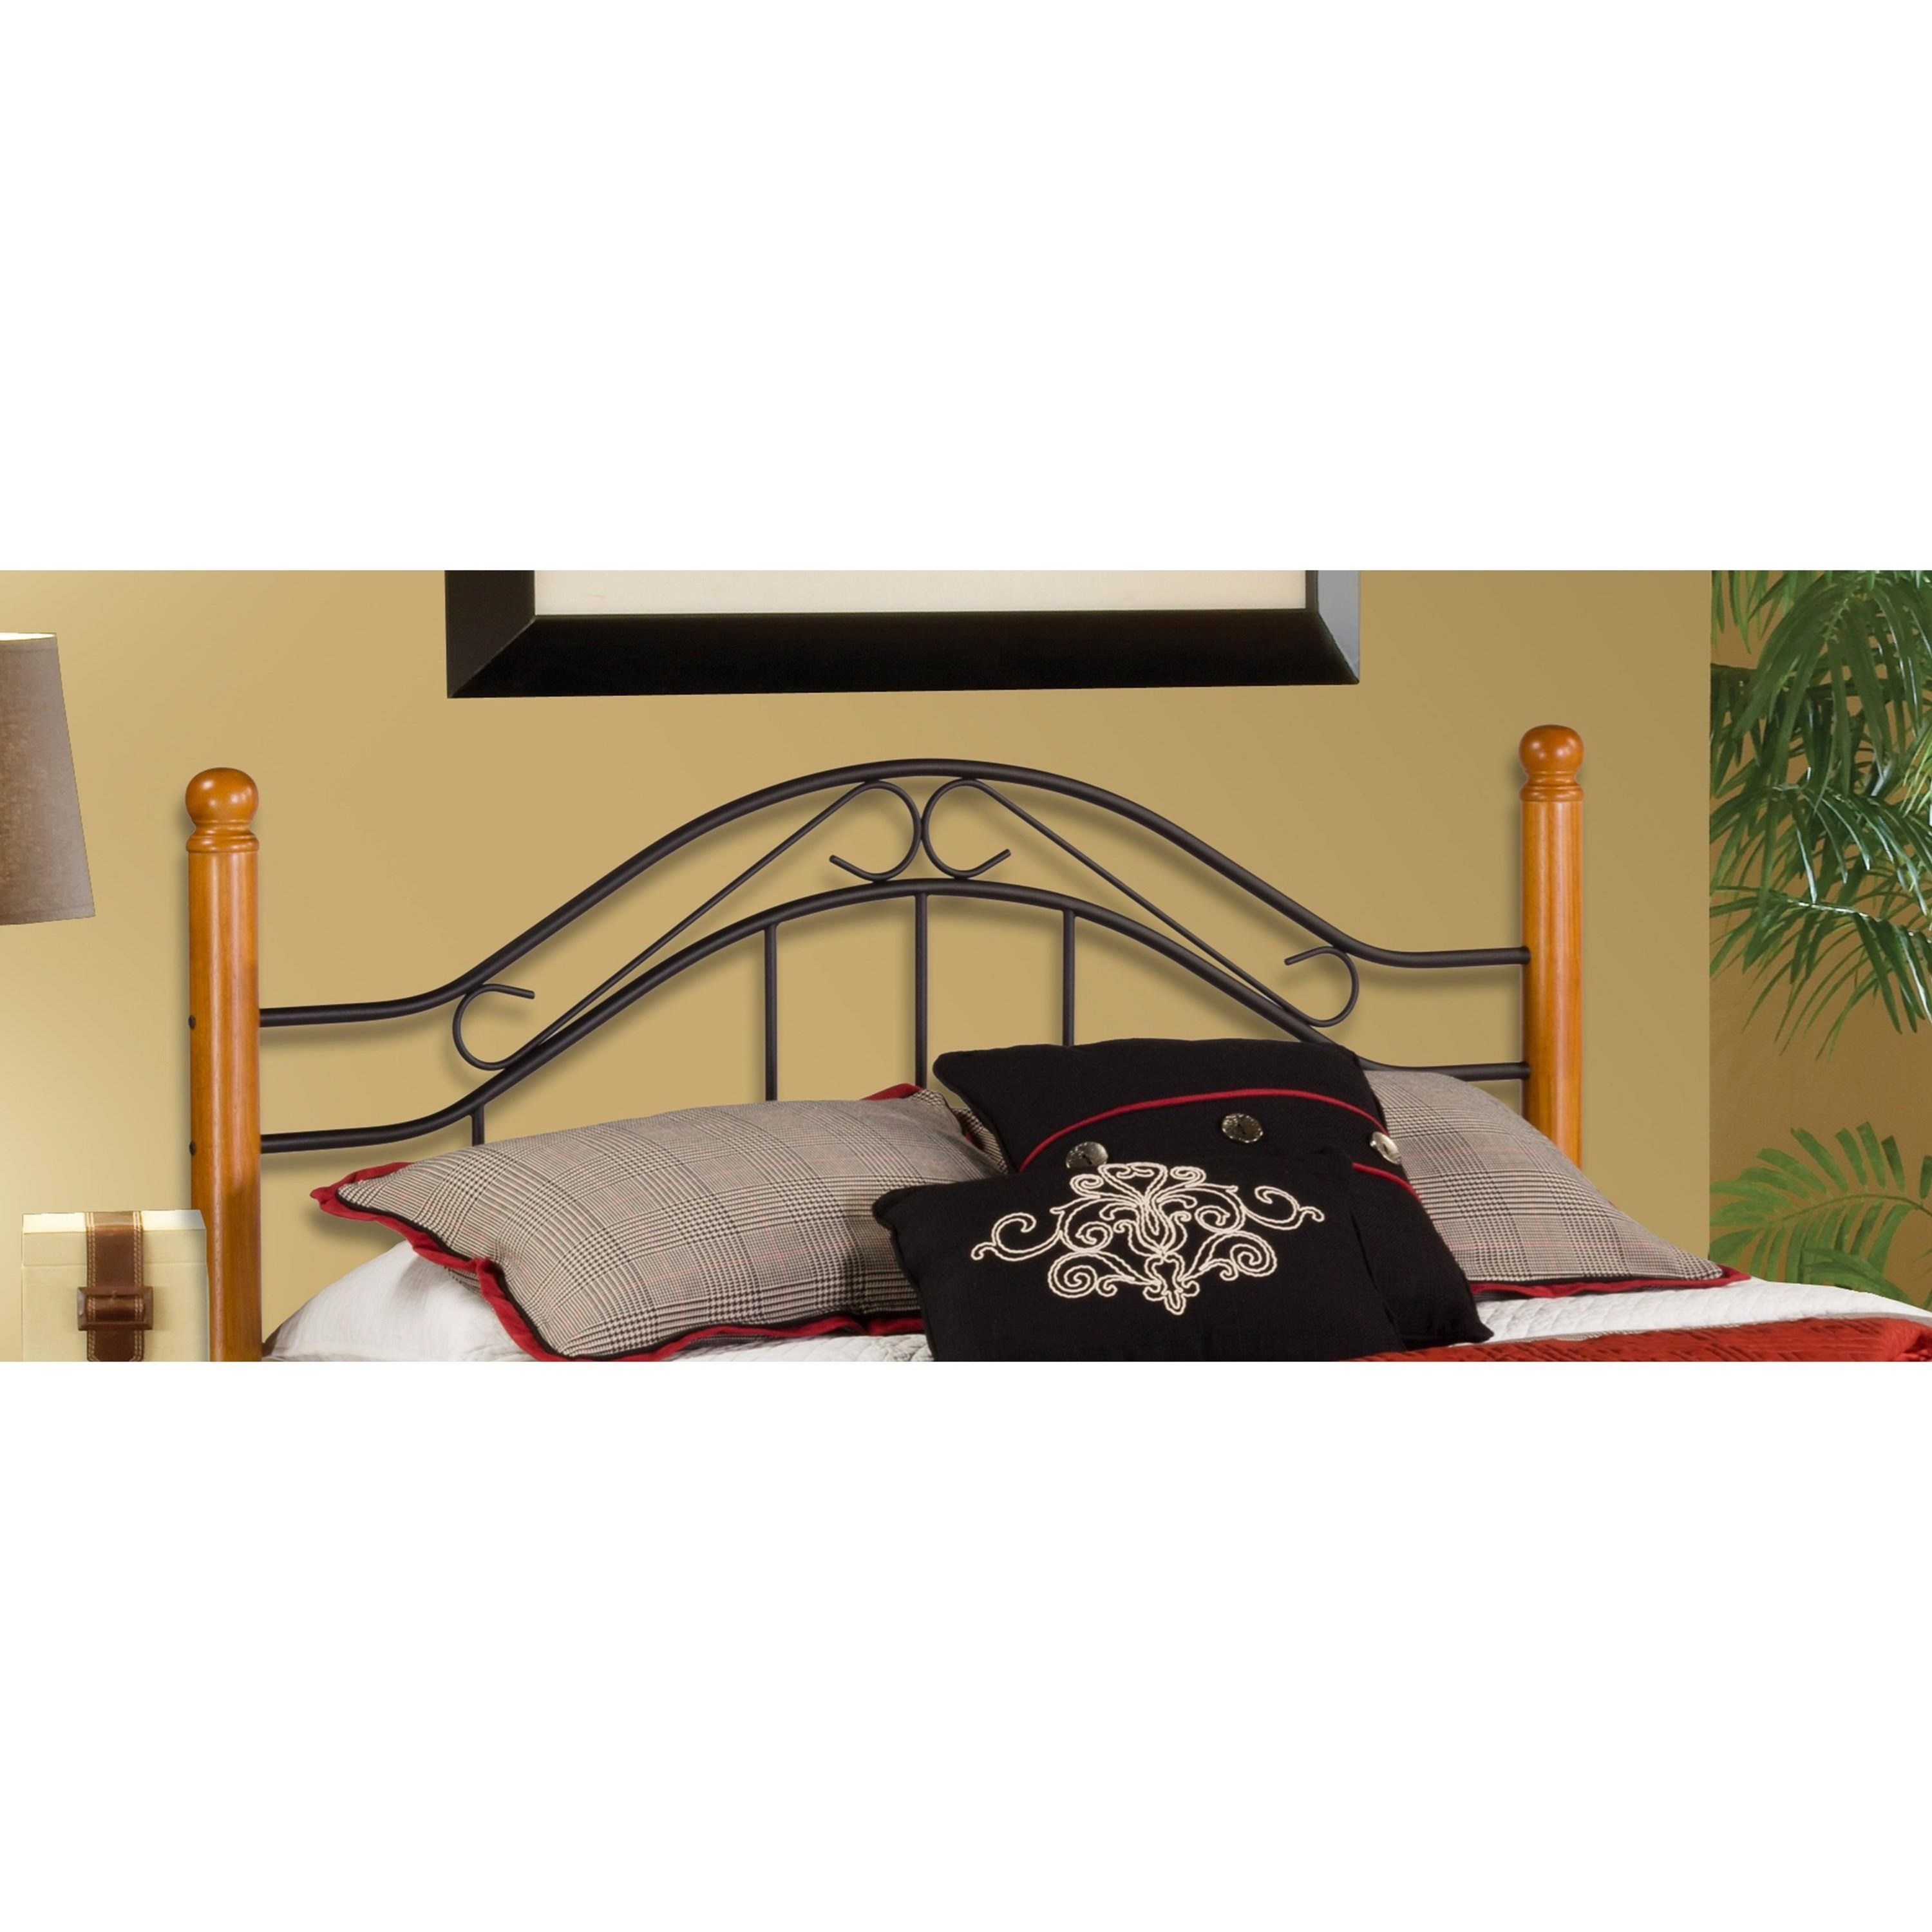 hillsdale wood beds full queen headboard with rails vandrie home furnishings headboards. Black Bedroom Furniture Sets. Home Design Ideas